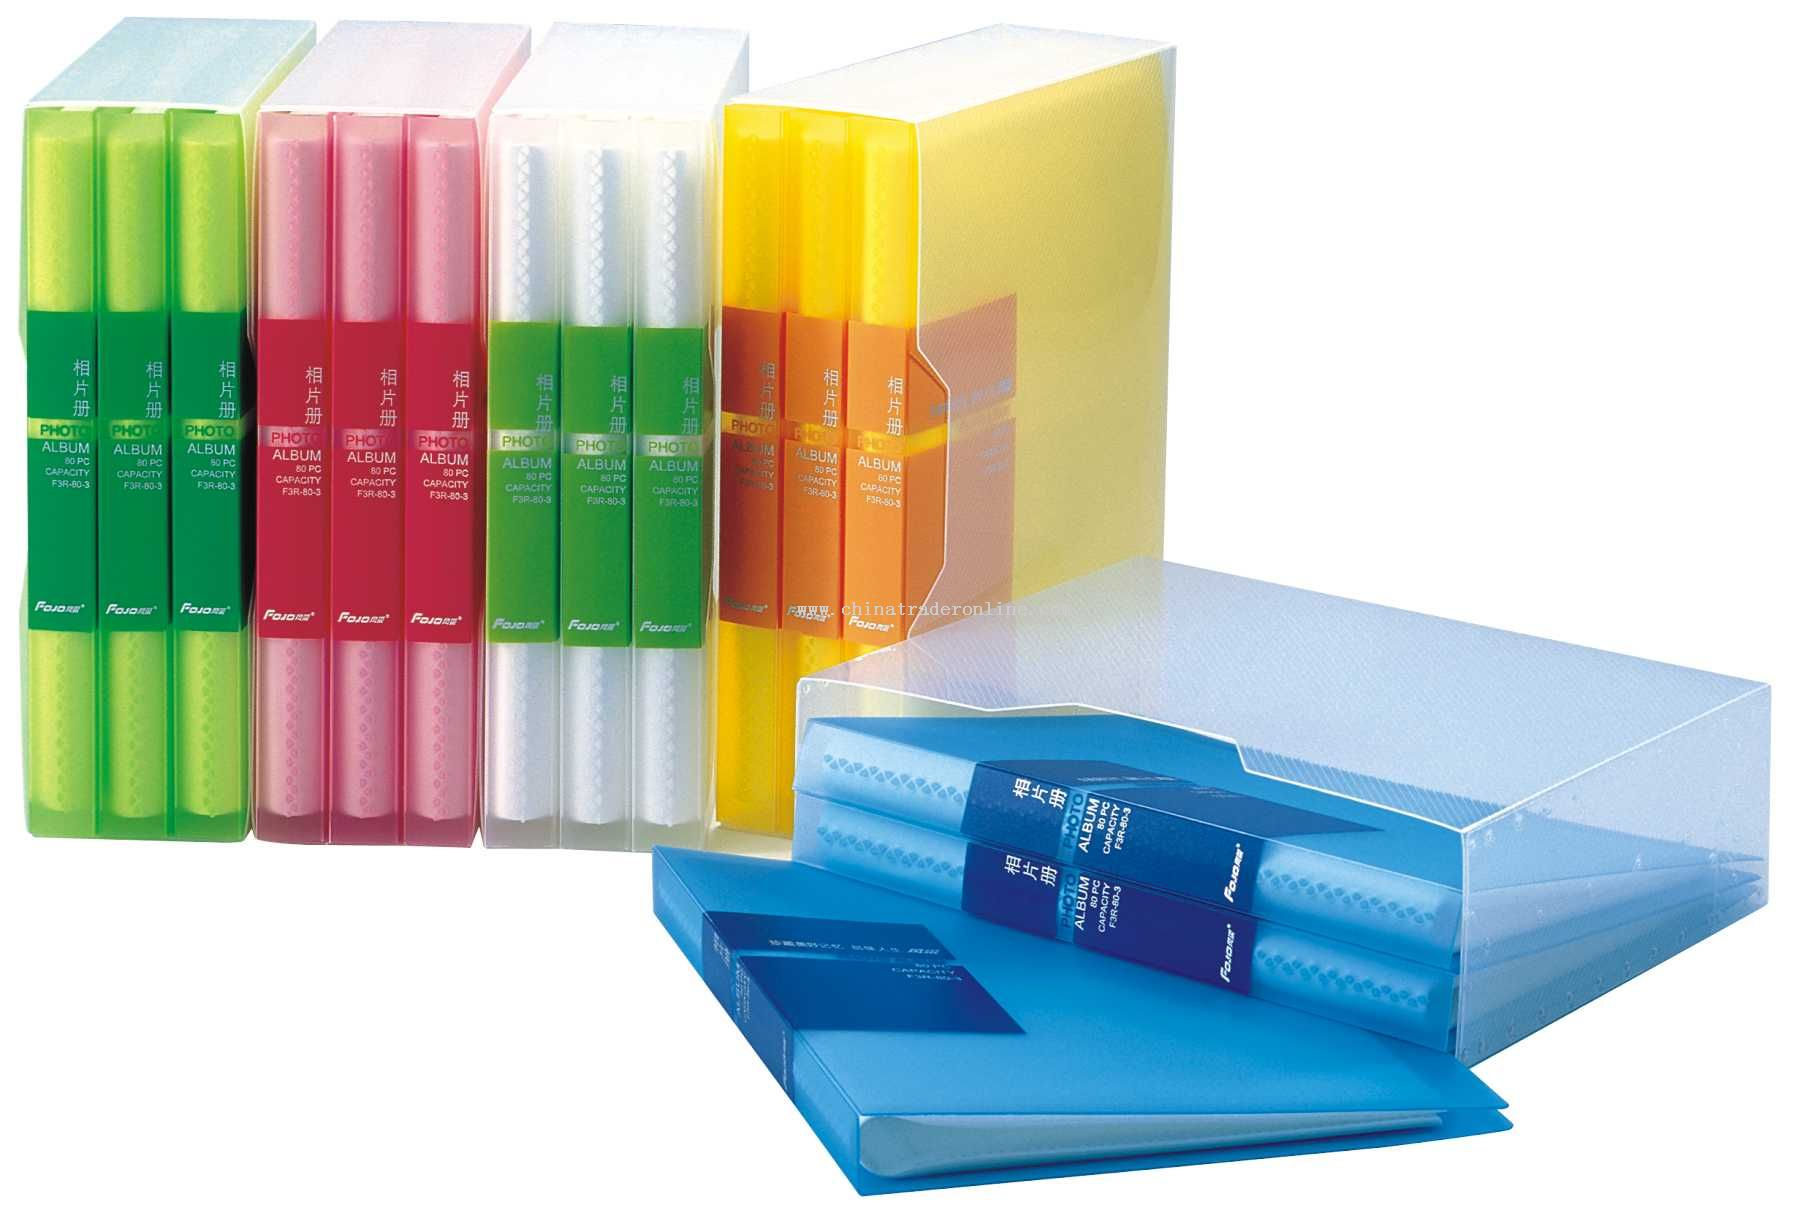 PP clear photo album holder 3 in 1